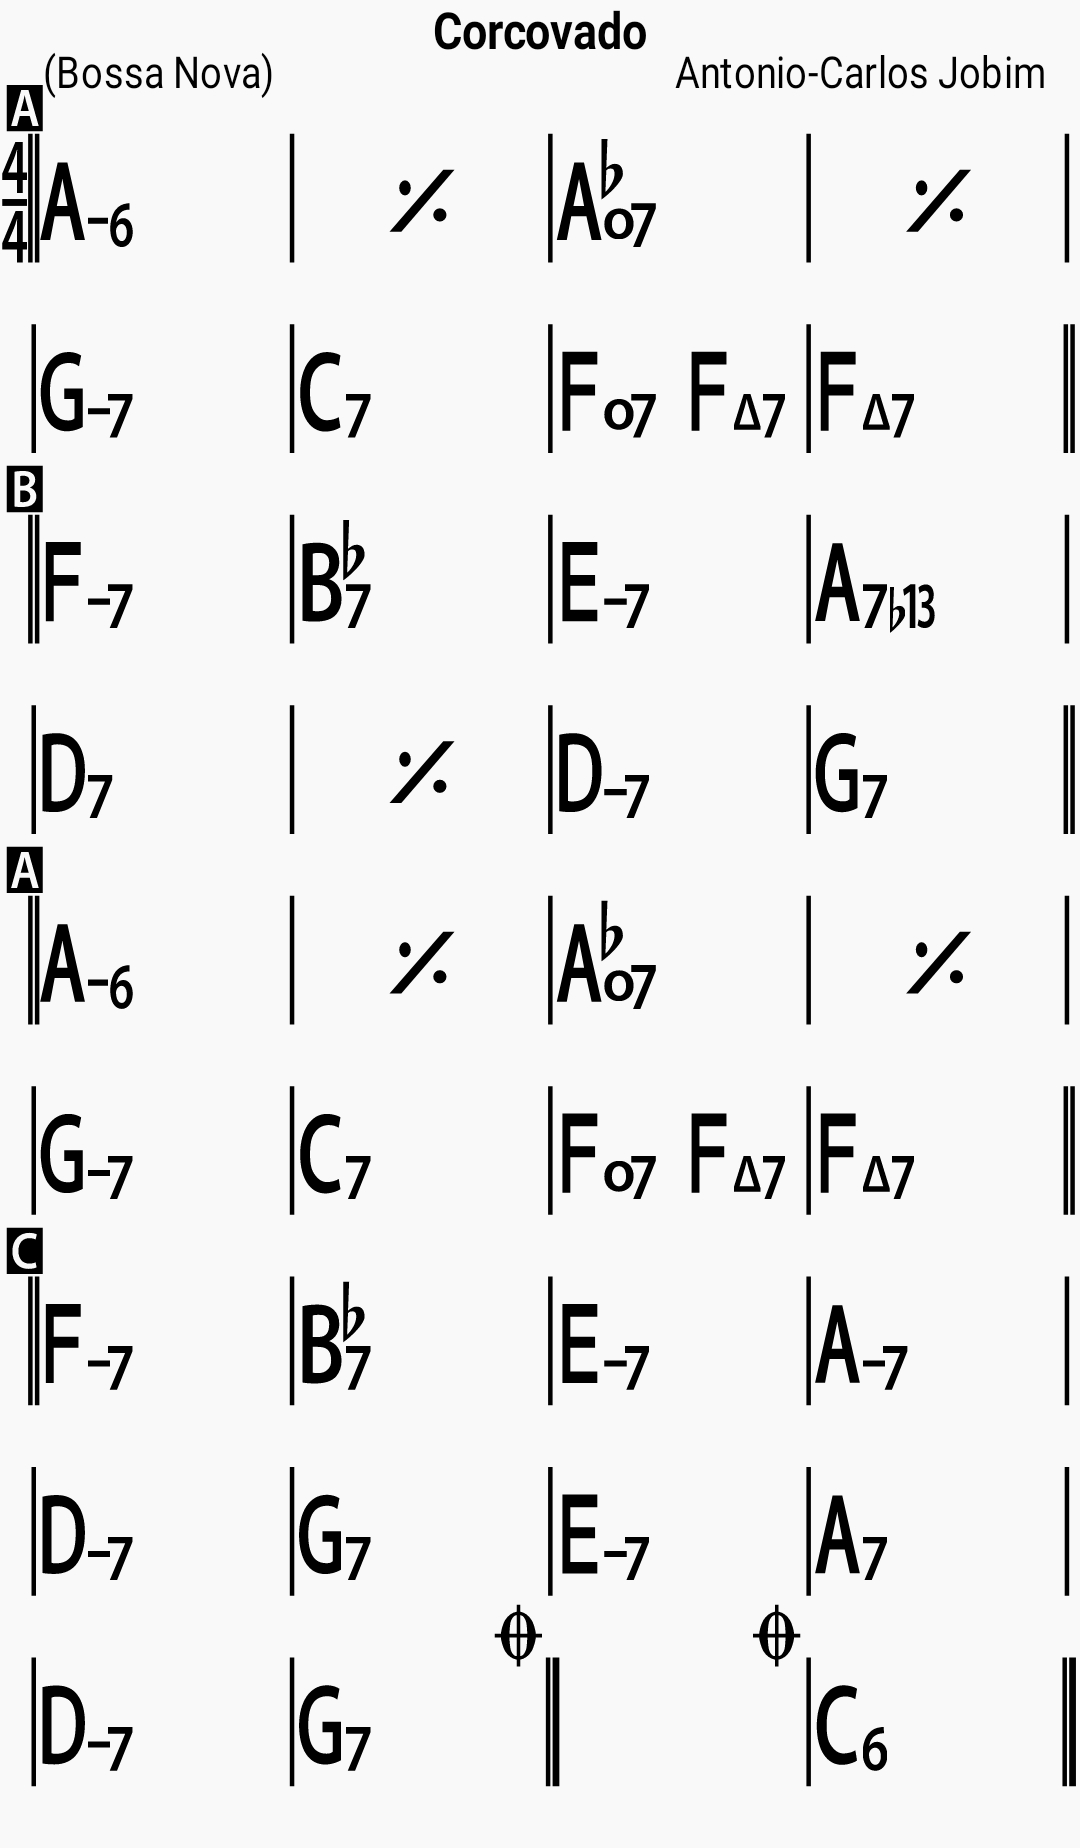 Chord chart for the jazz standard Corcovado